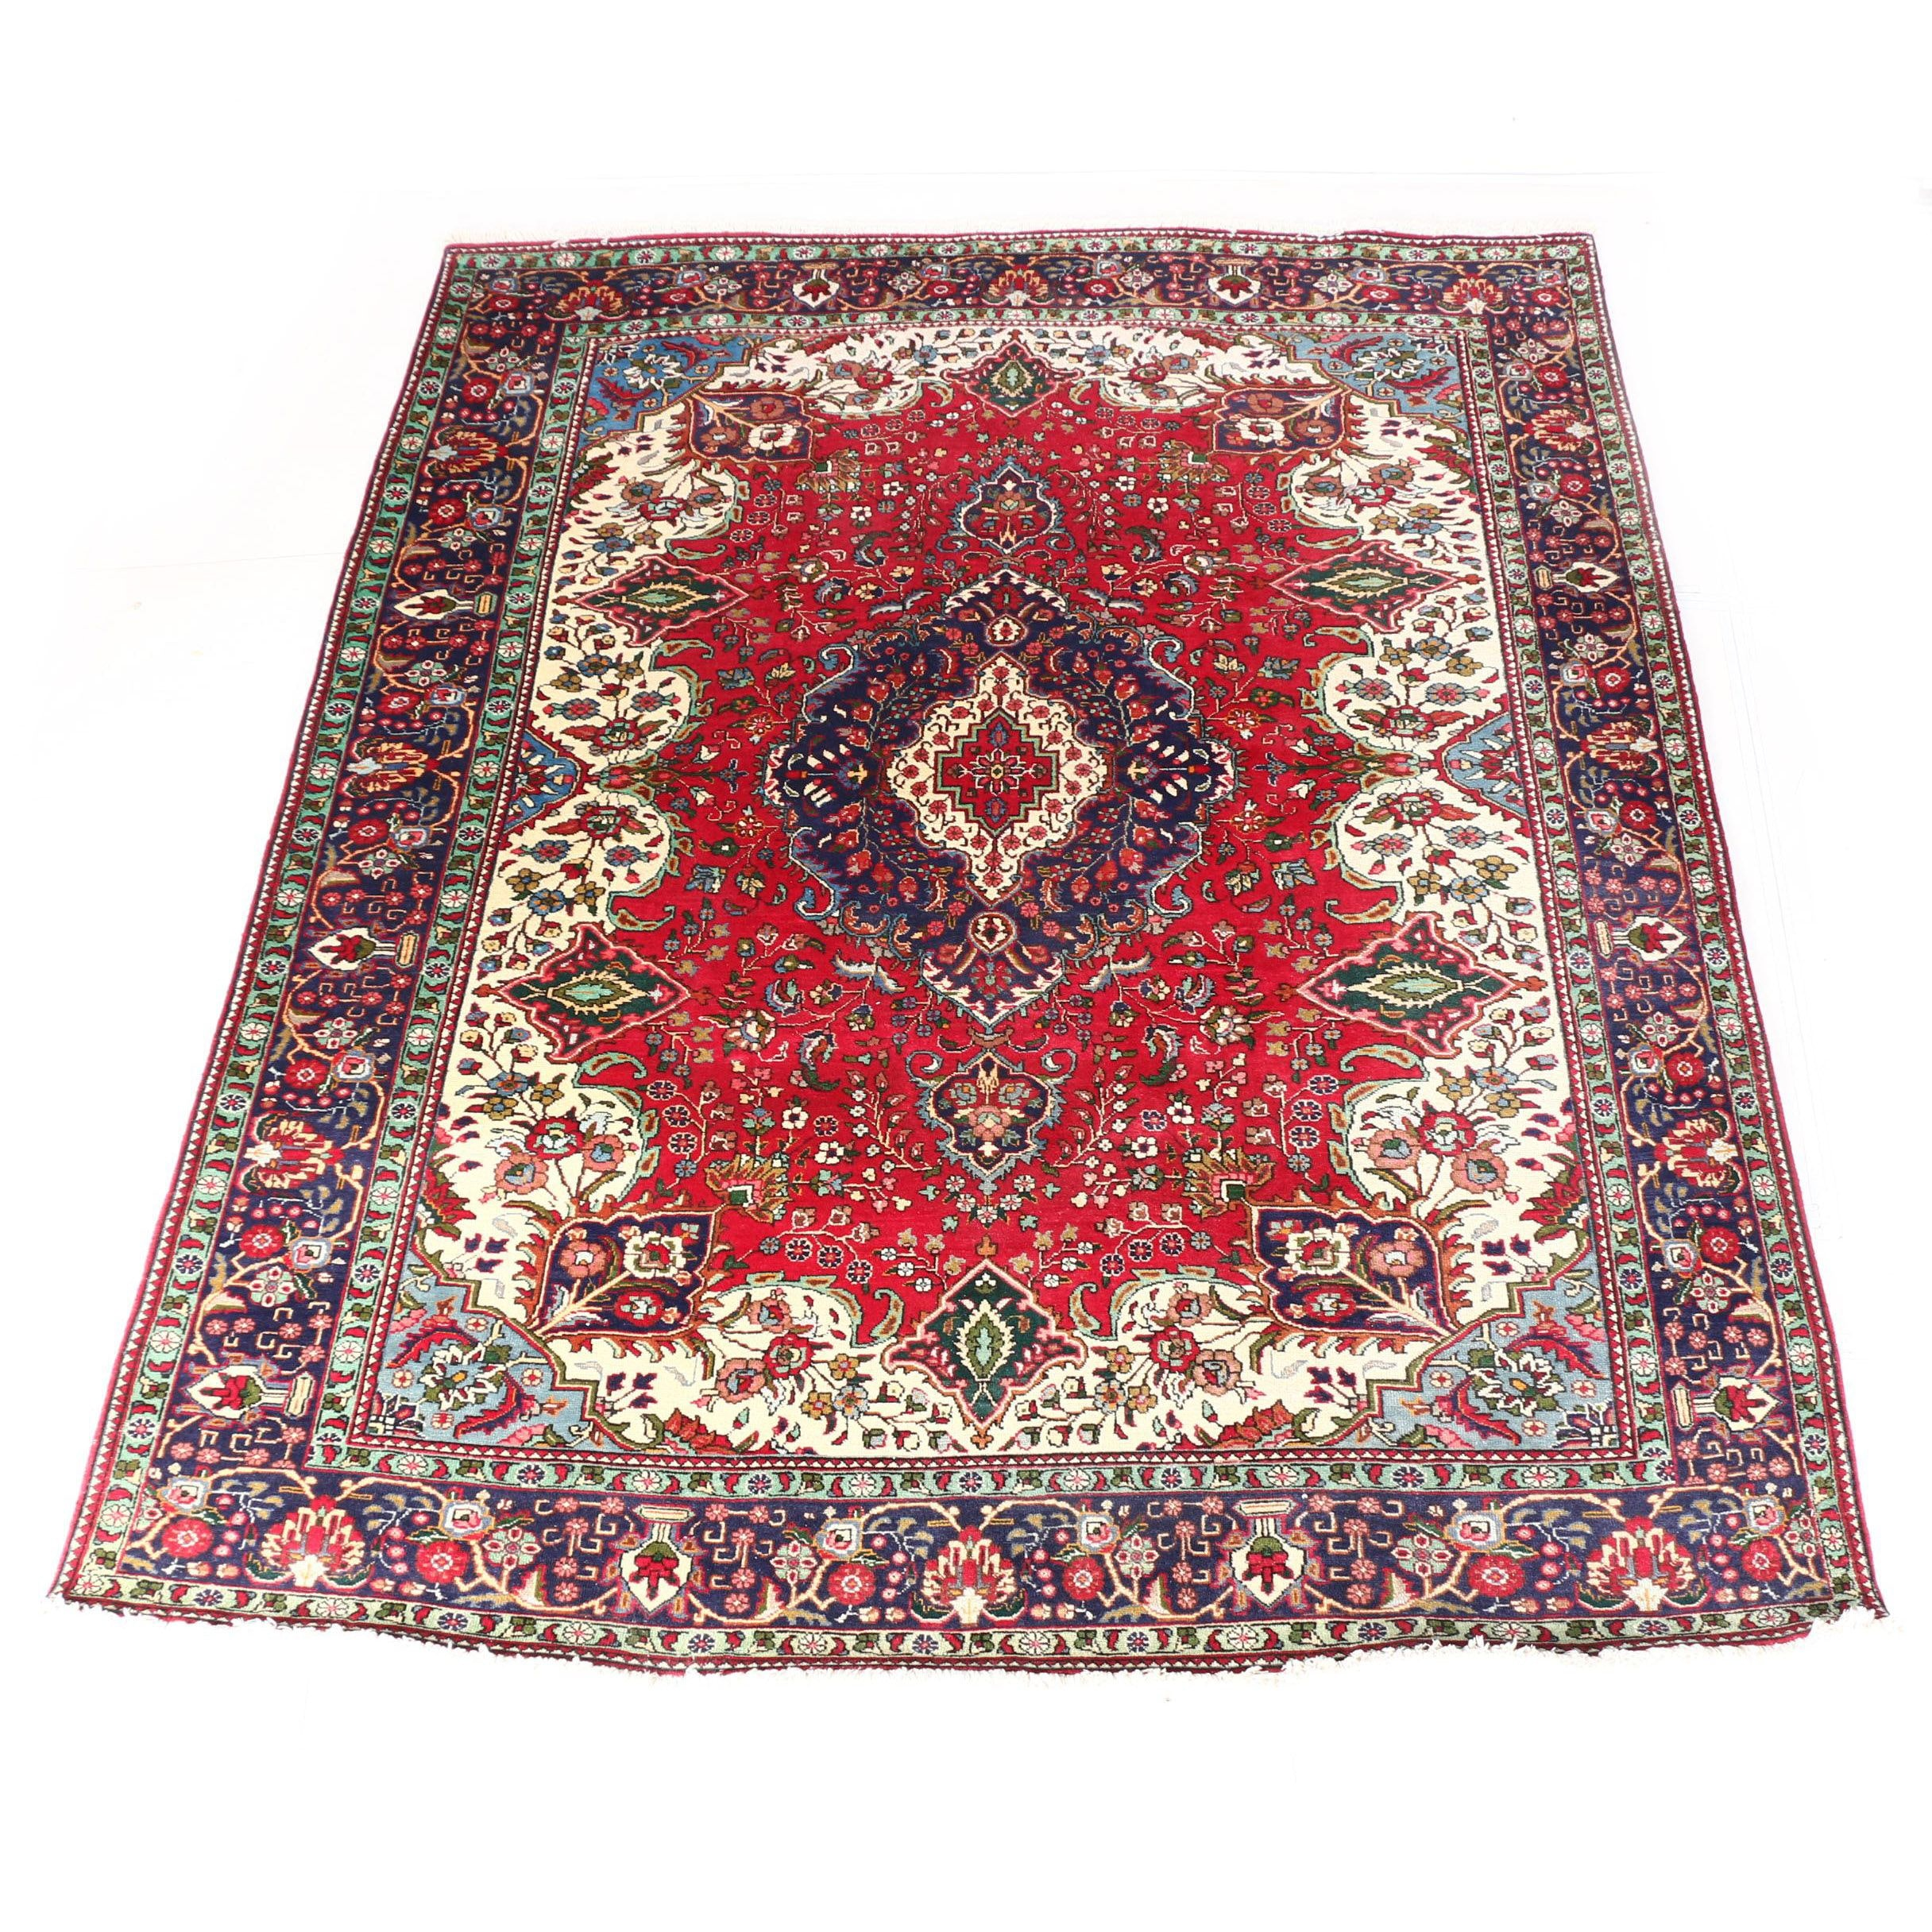 Power Loomed Indo-Persian Wool Area Rug